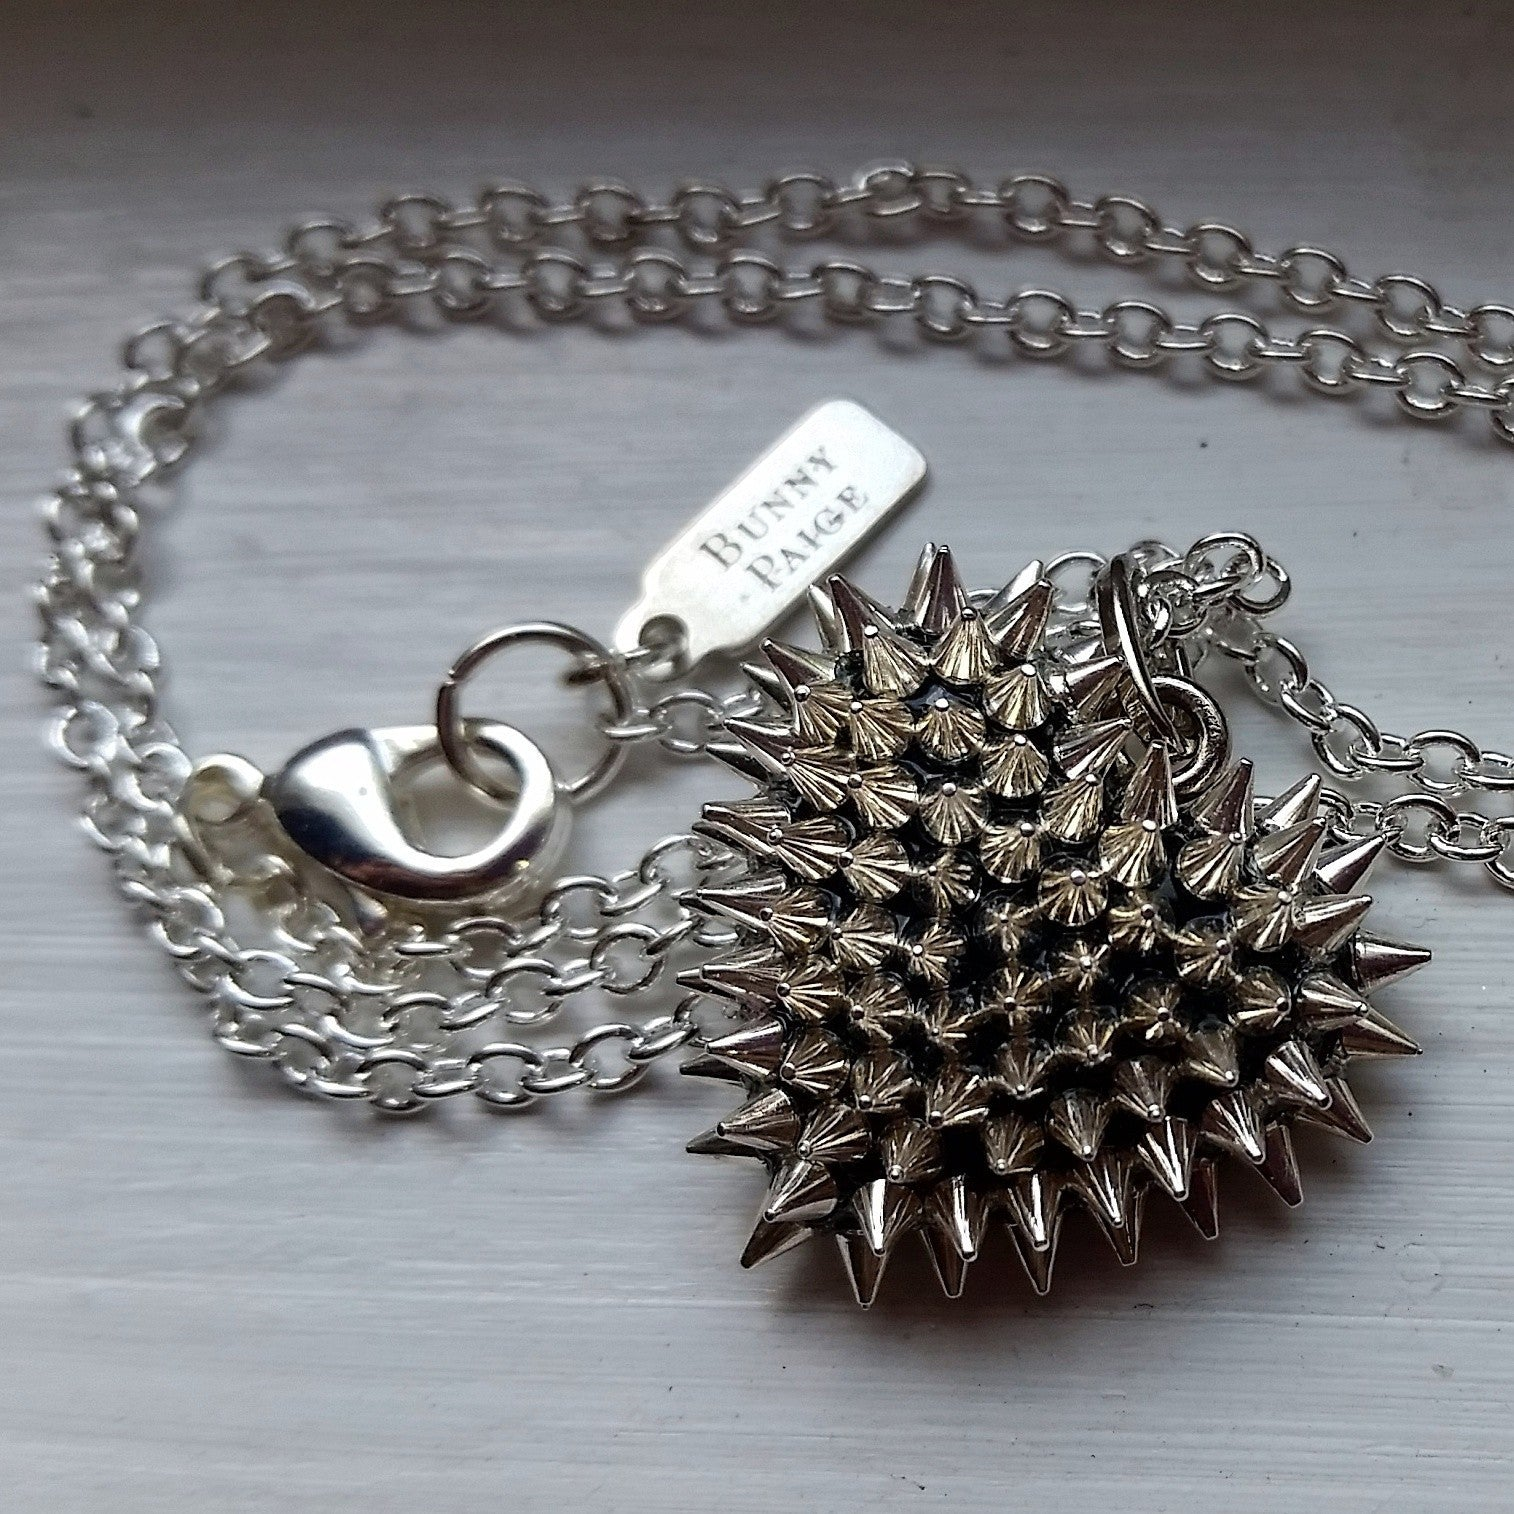 Micro Spiked Heart Necklace